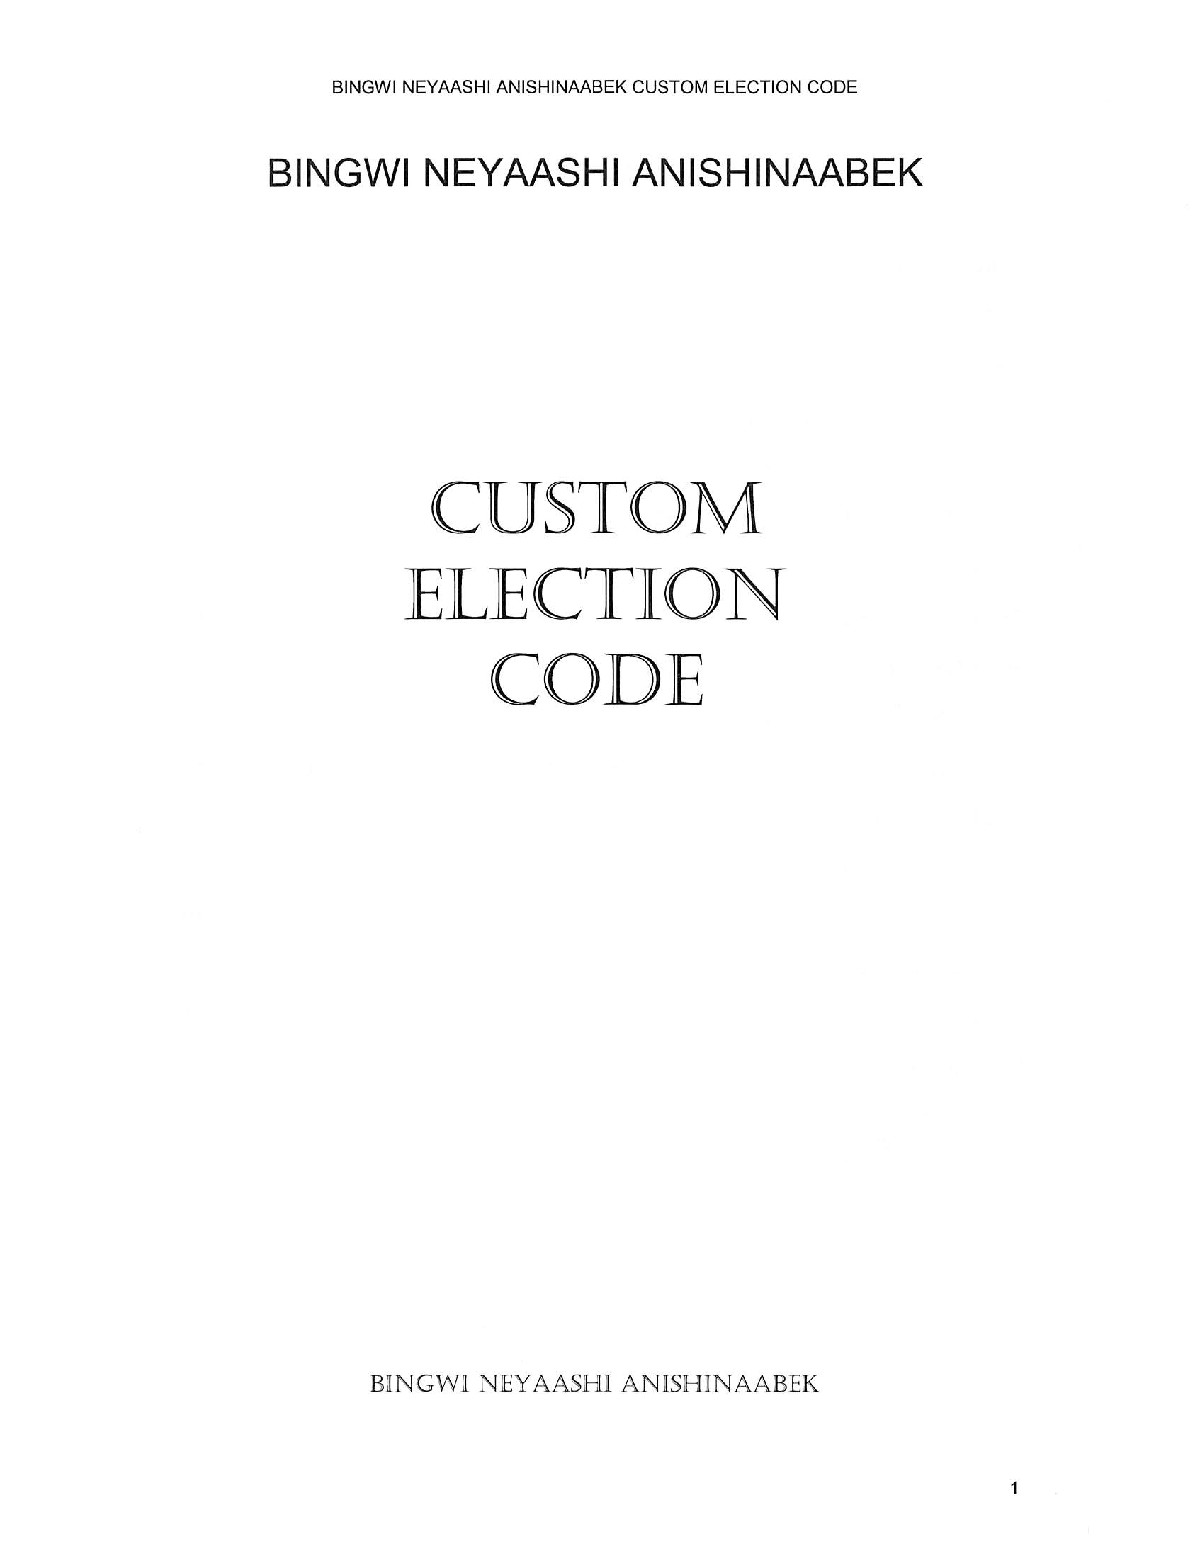 election-code-title-page